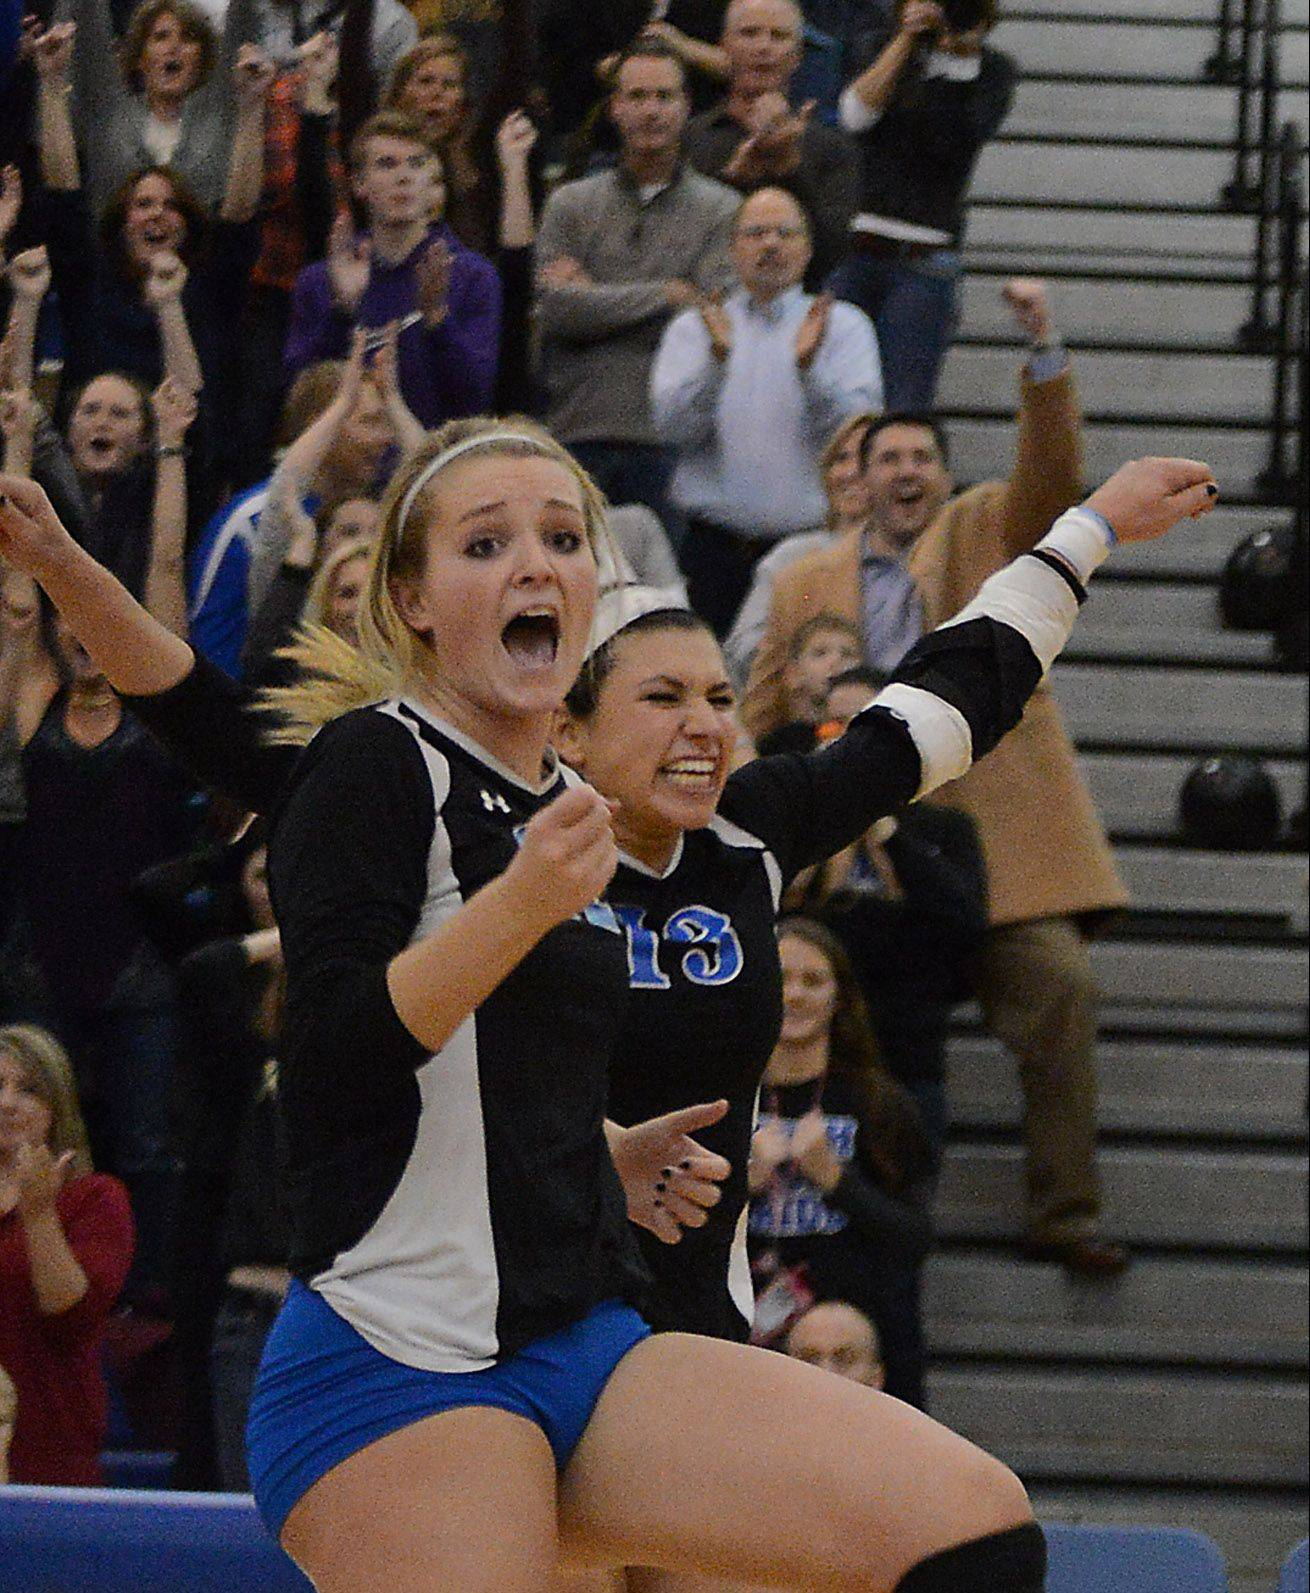 Geneva's Maddie Courter, left, Courtney Caruso and all the Vikings fans behind them celebrate the 25th point of Game 3.